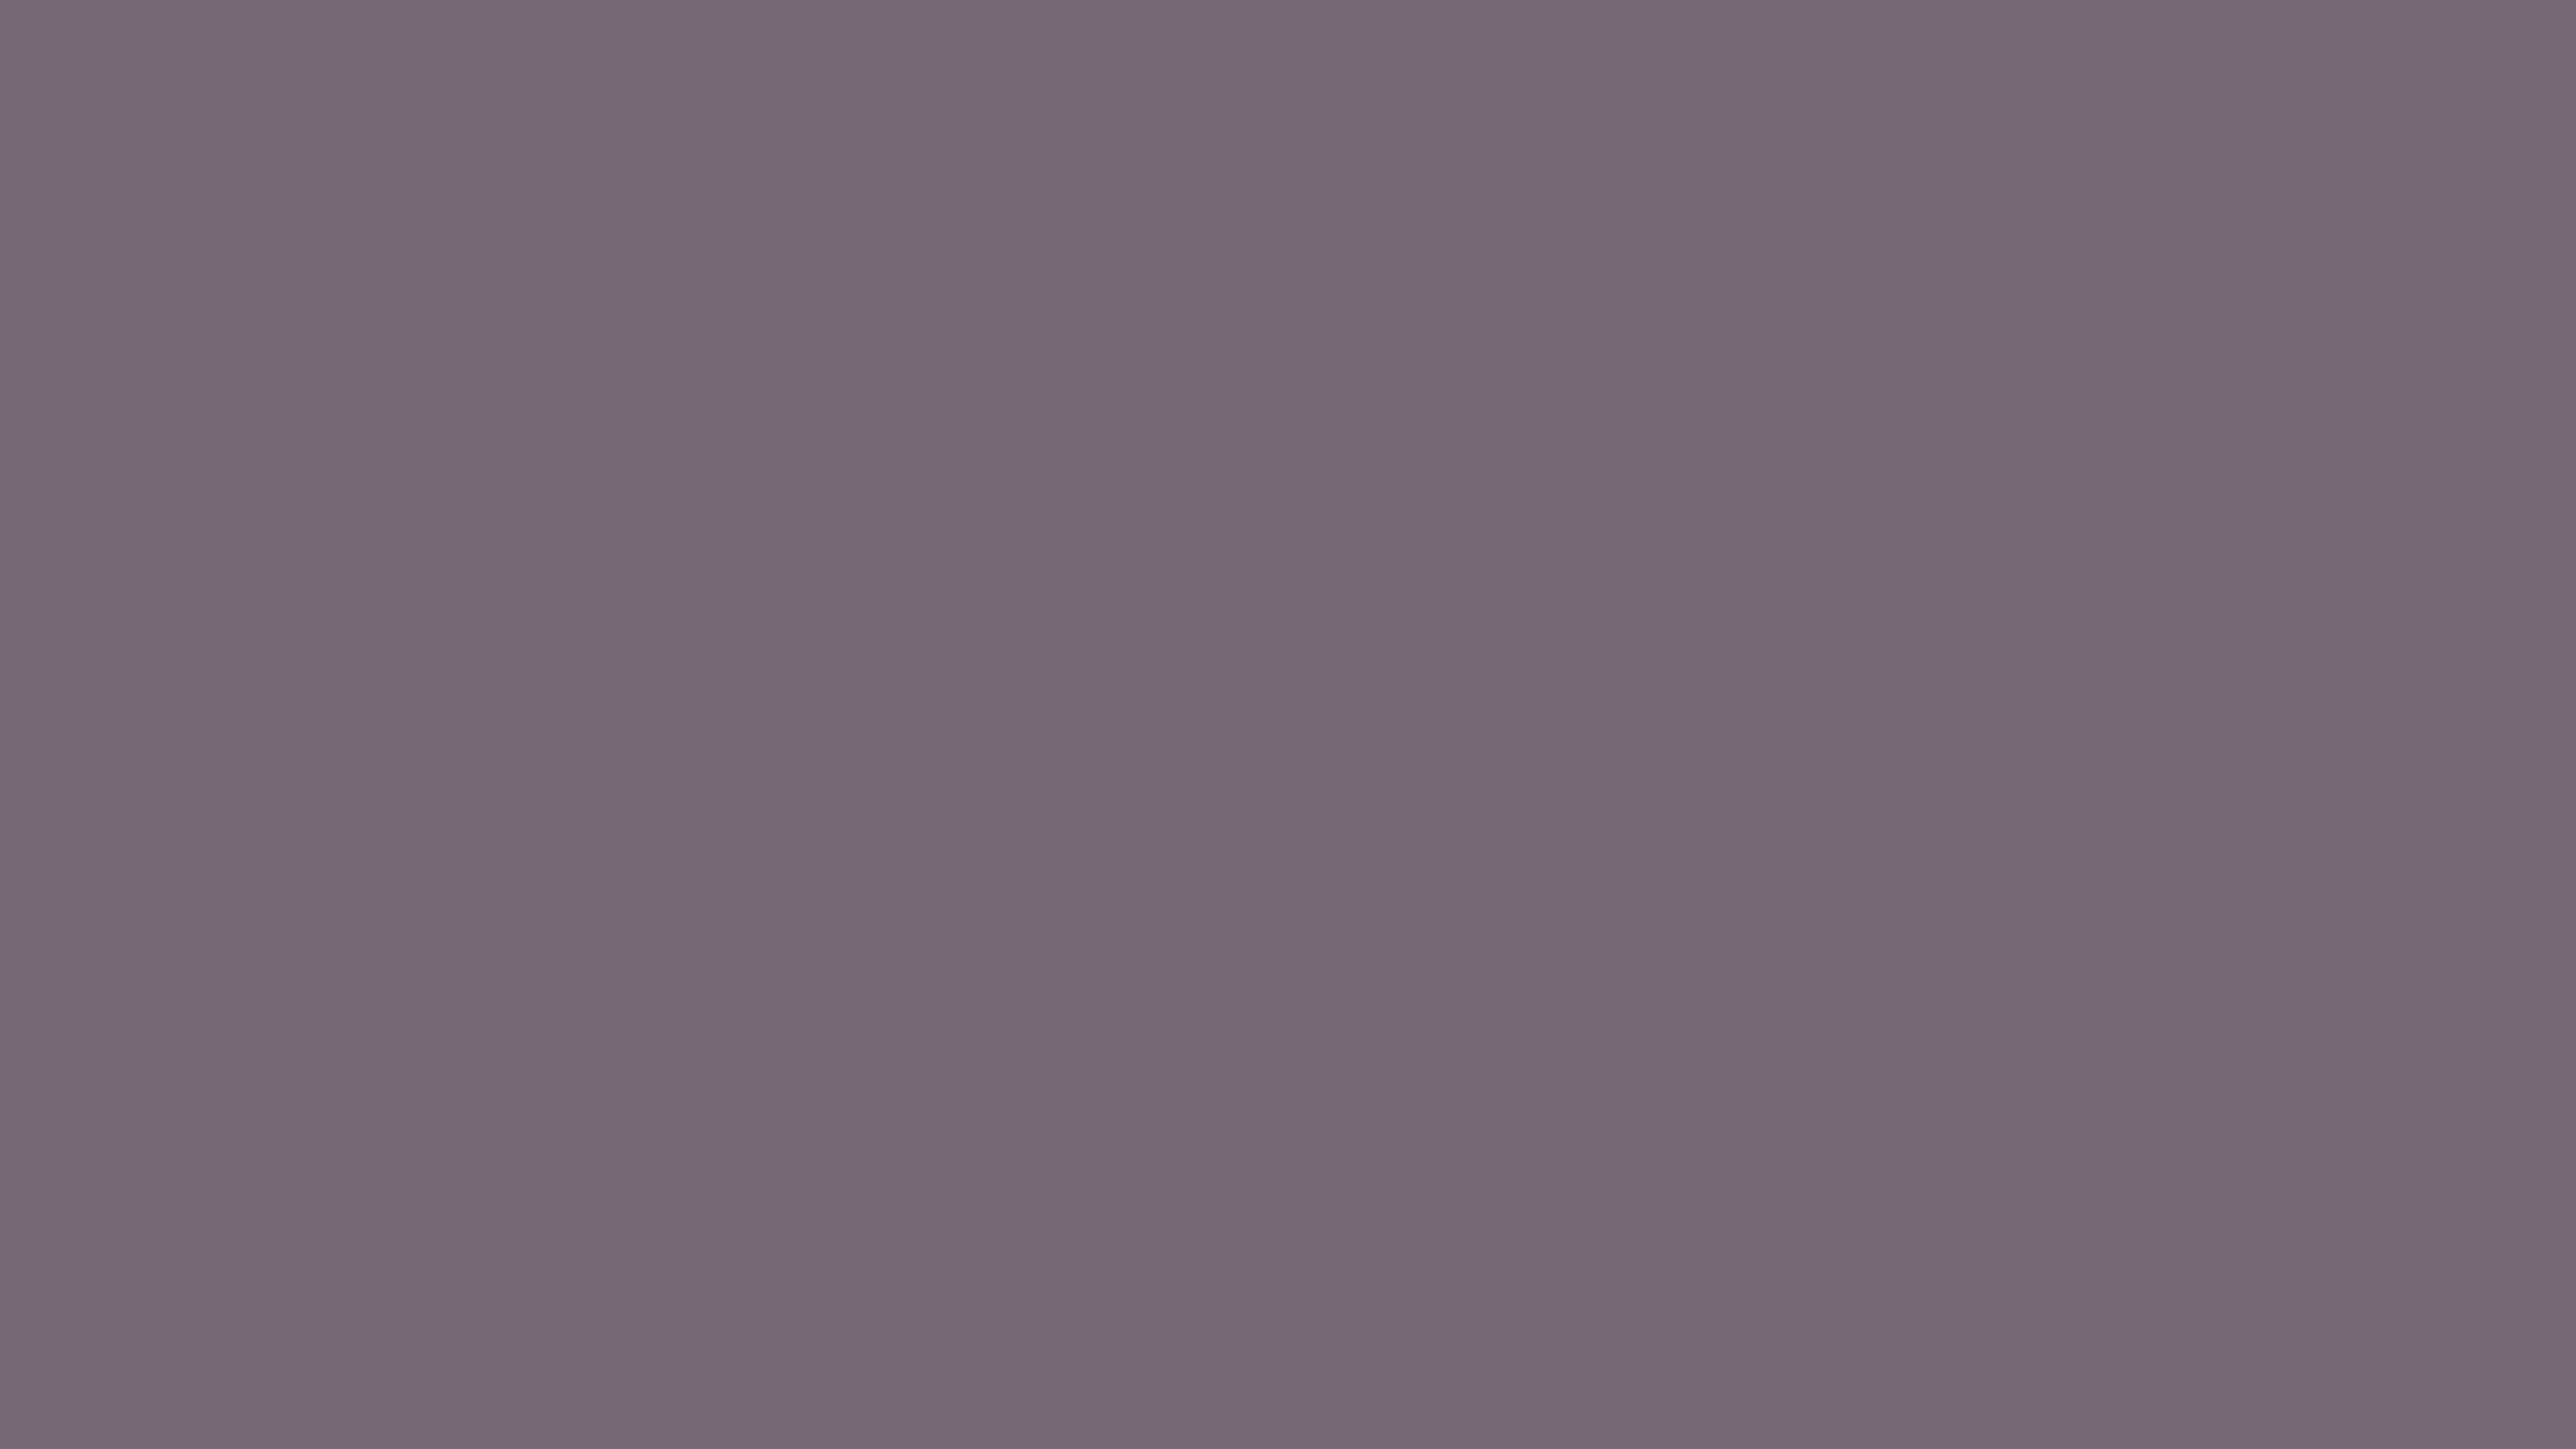 3840x2160 Old Lavender Solid Color Background